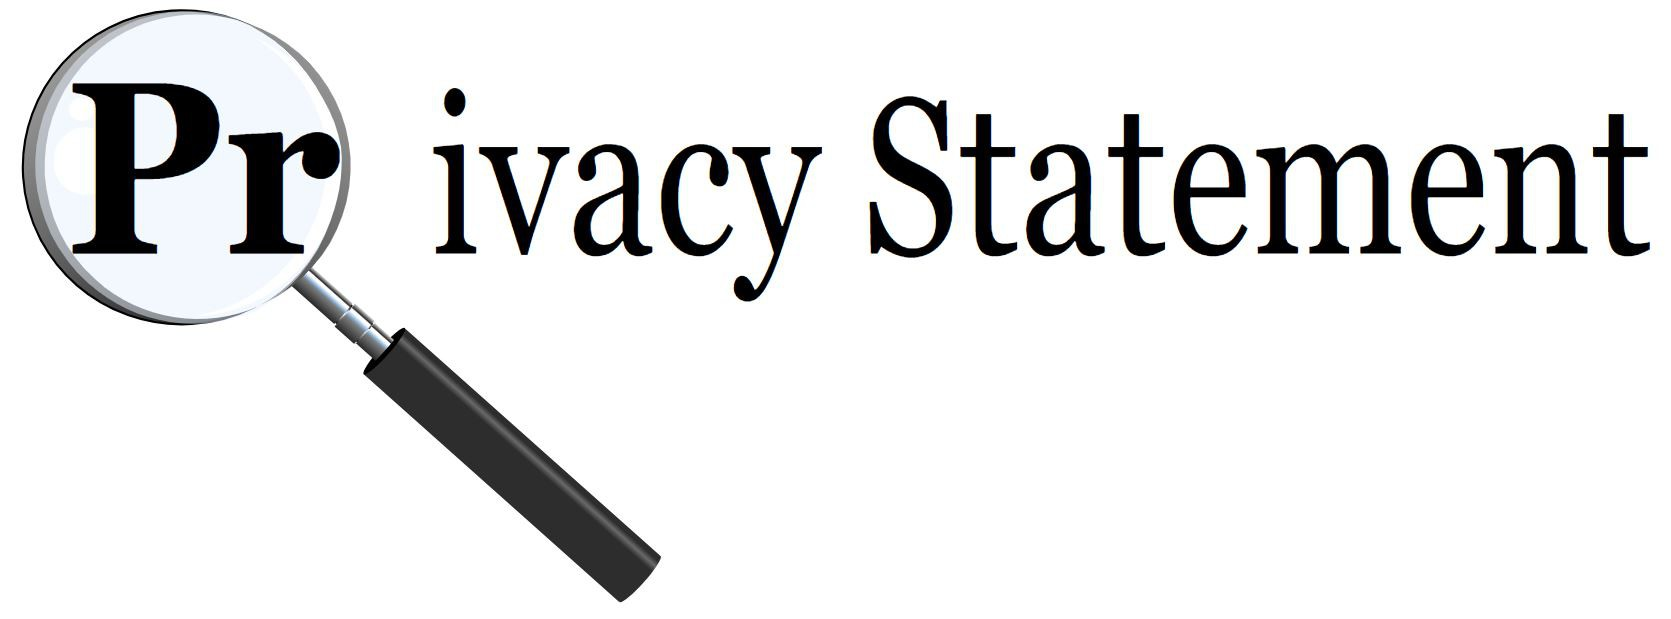 Privacy Statment